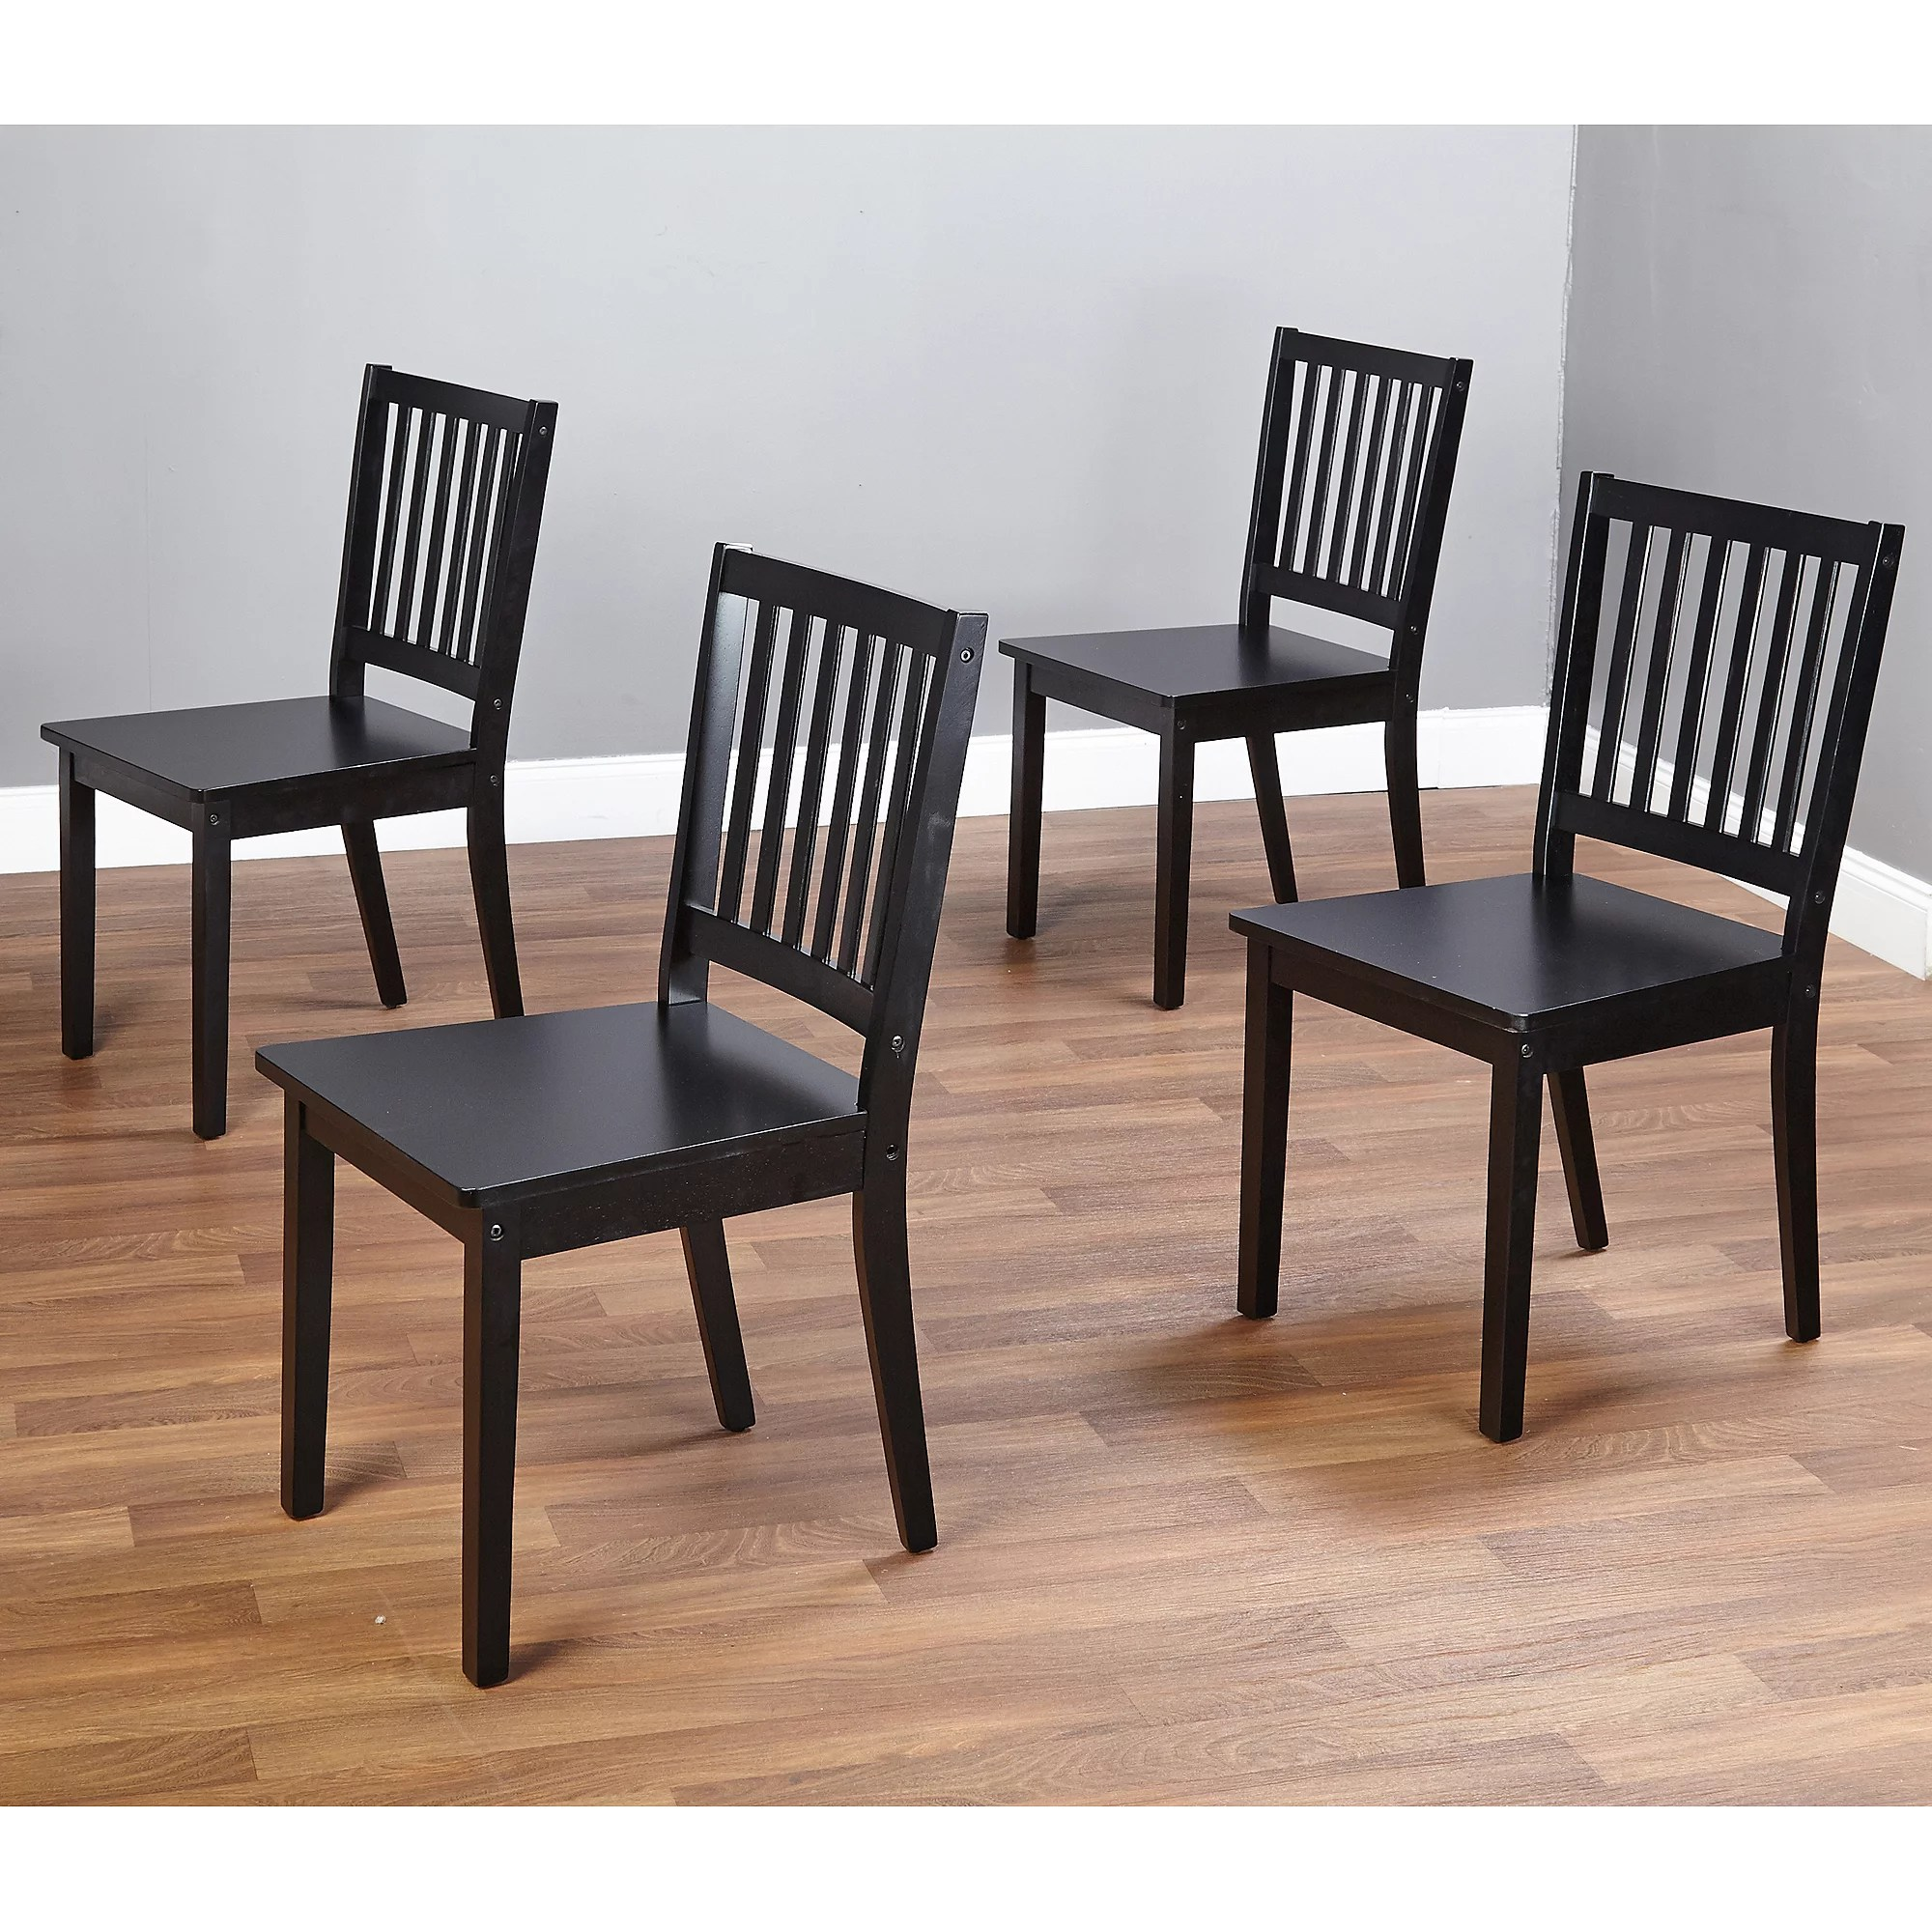 kitchen chairs with rollers Shaker Dining Chairs Set of 4 Black